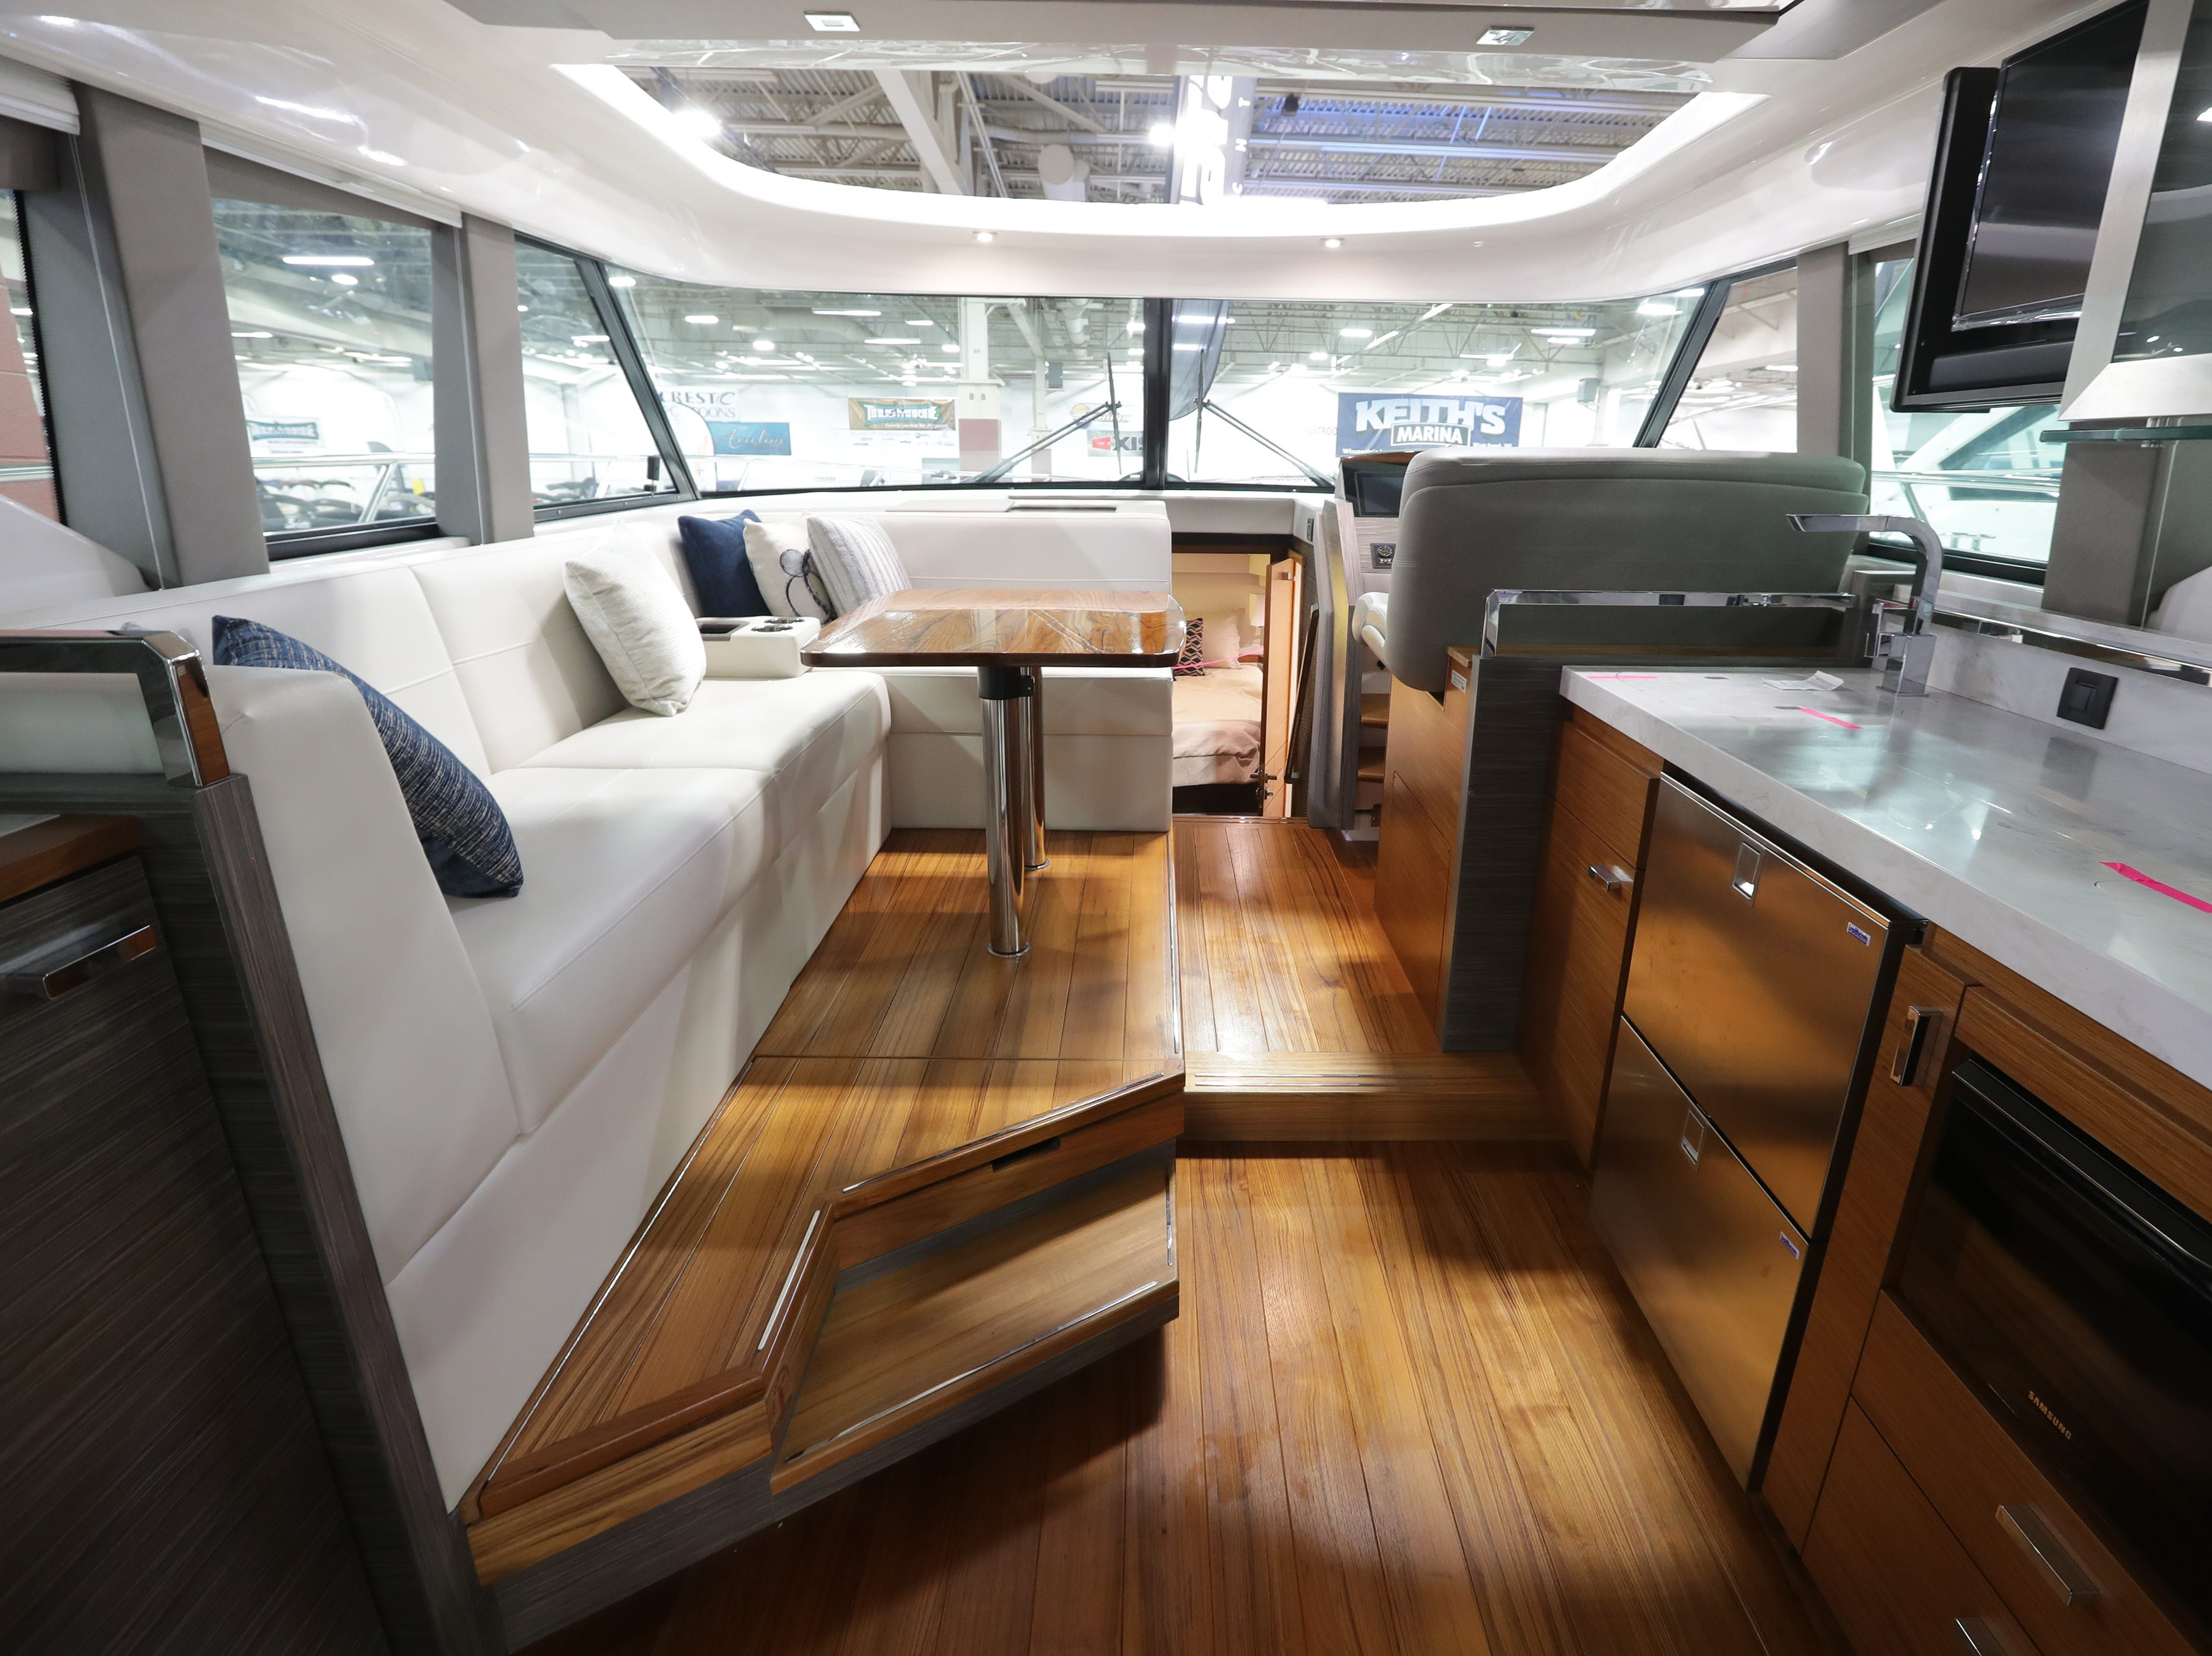 This 2019 44-foot Tiara yacht, which lists for  $1,205,682, features a large upper seating area and a kitchen.